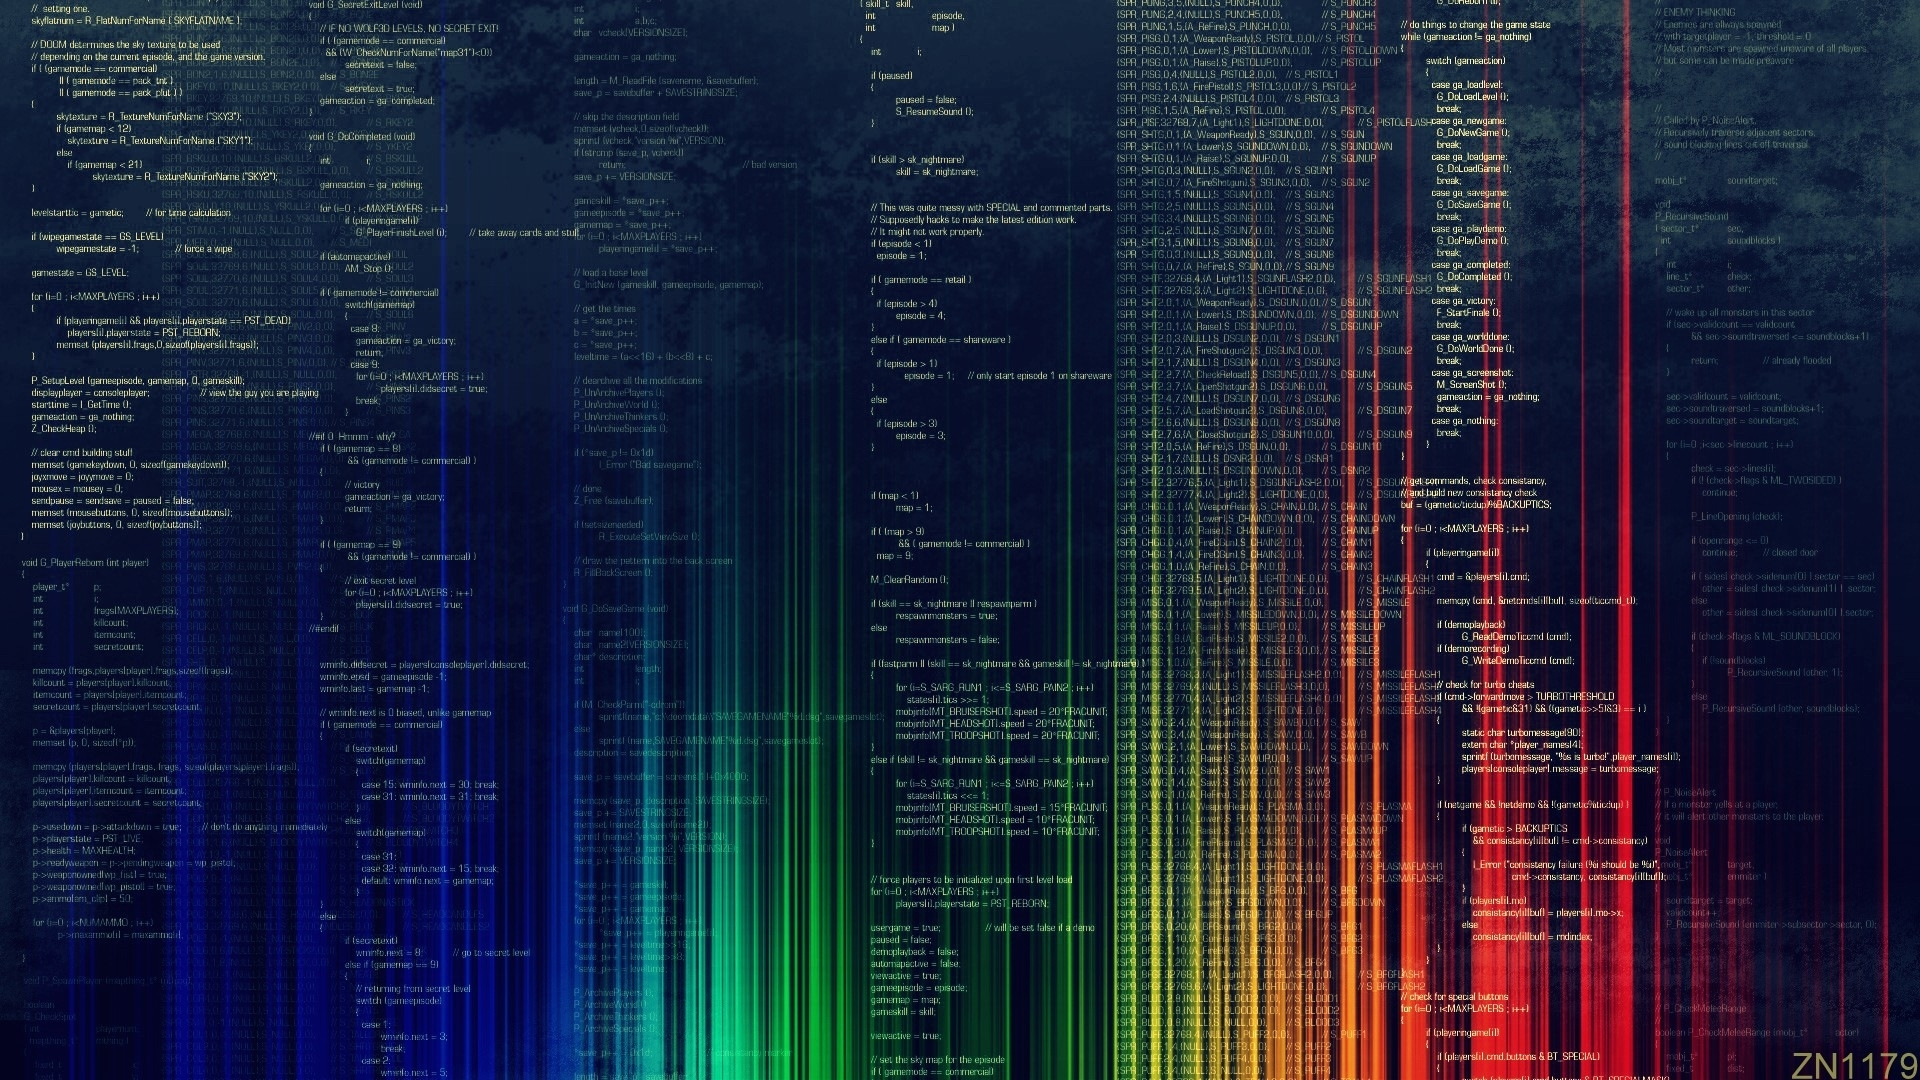 code artwork 1920x1080 wallpaper Best WallpapersTop Wallpapers 1920x1080